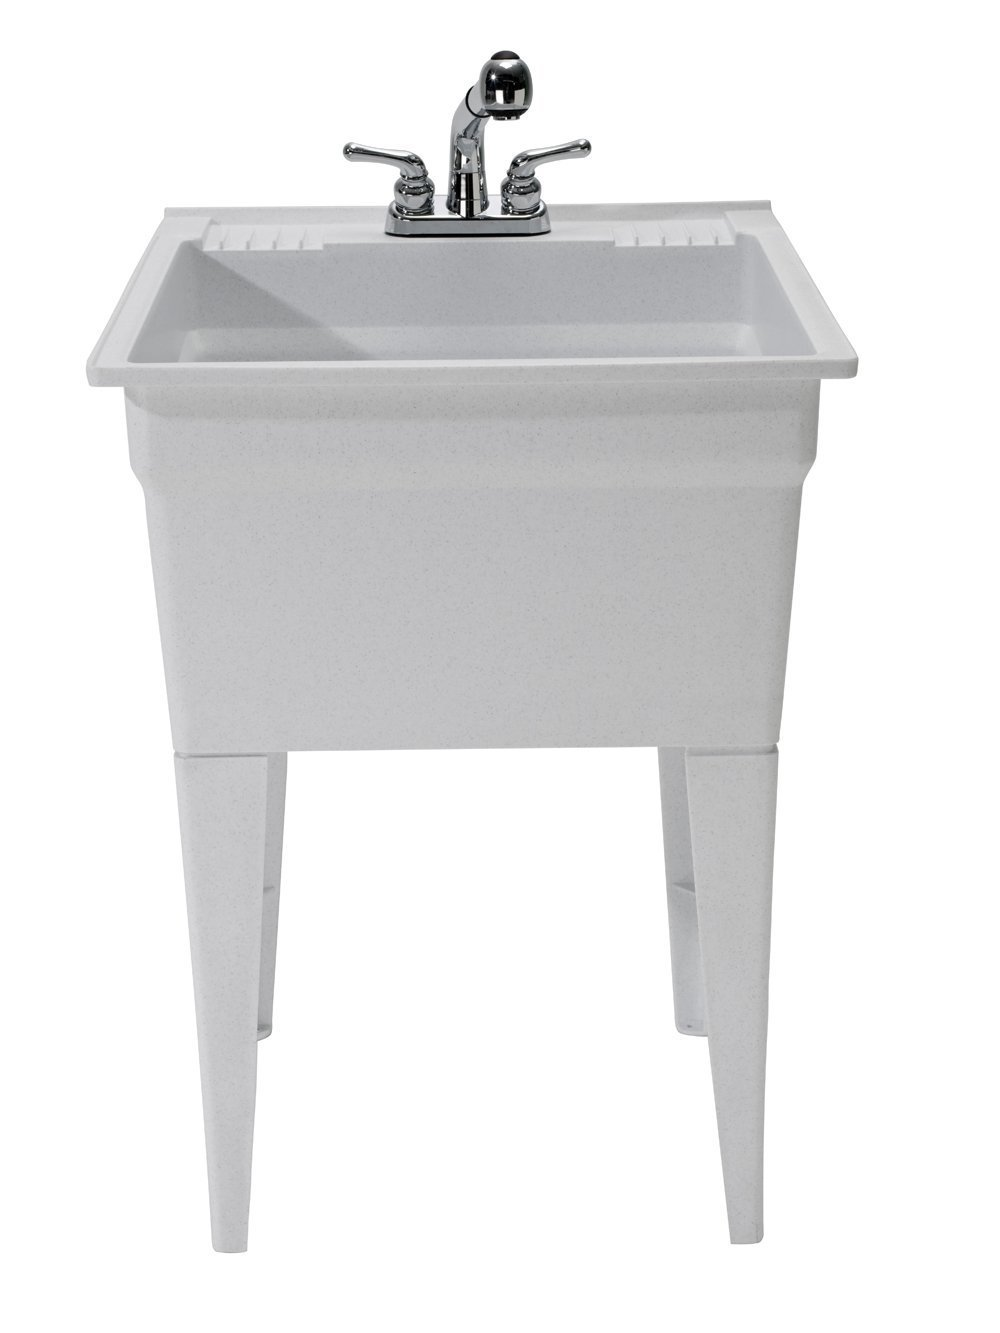 CASHEL 1960-32-02 Heavy Duty Sink - Fully Loaded Sink Kit, Granite